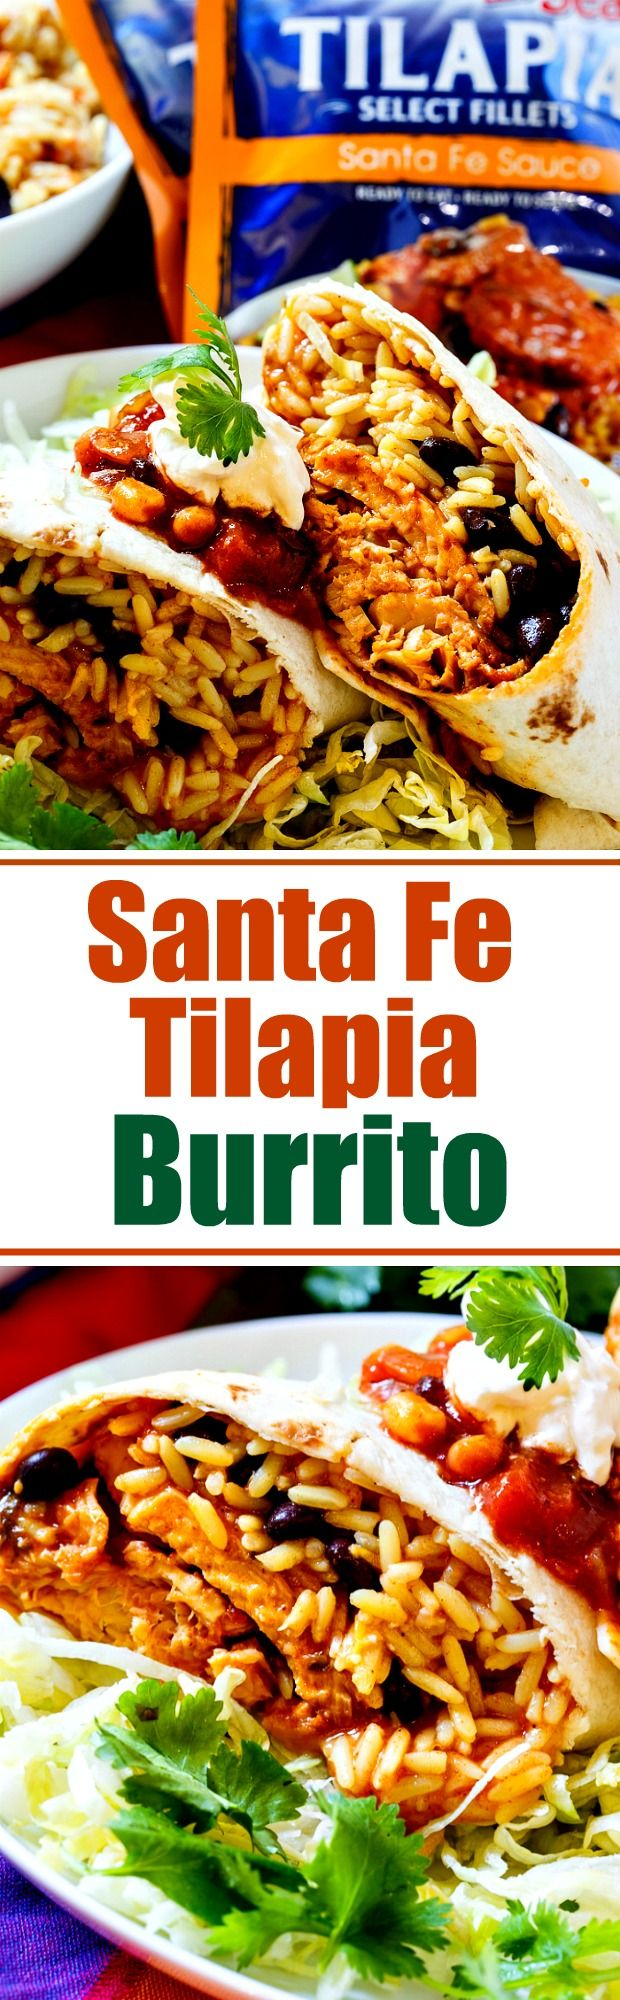 Santa Fe Tilapia Burrito with rice and beans. Makes an easy, healthy lunch!